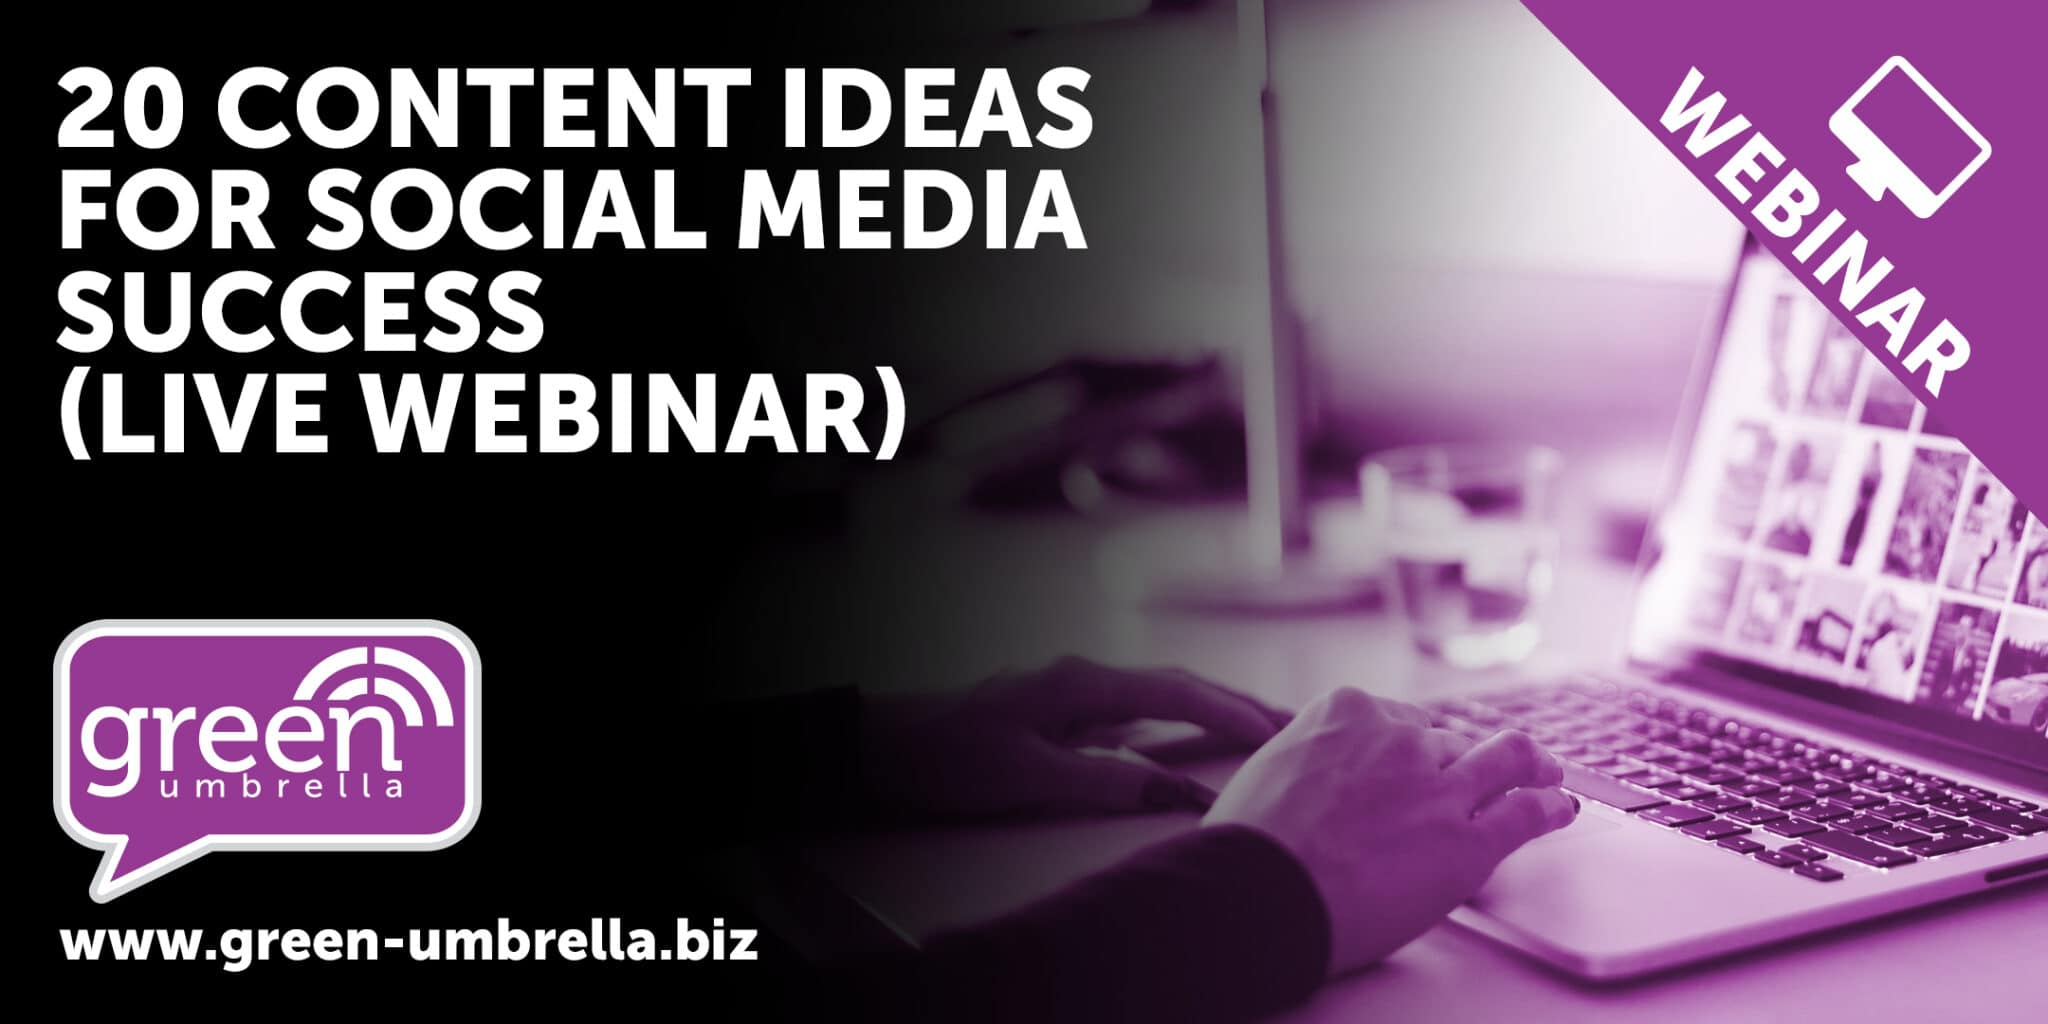 20 content ideas for social media success - webinar